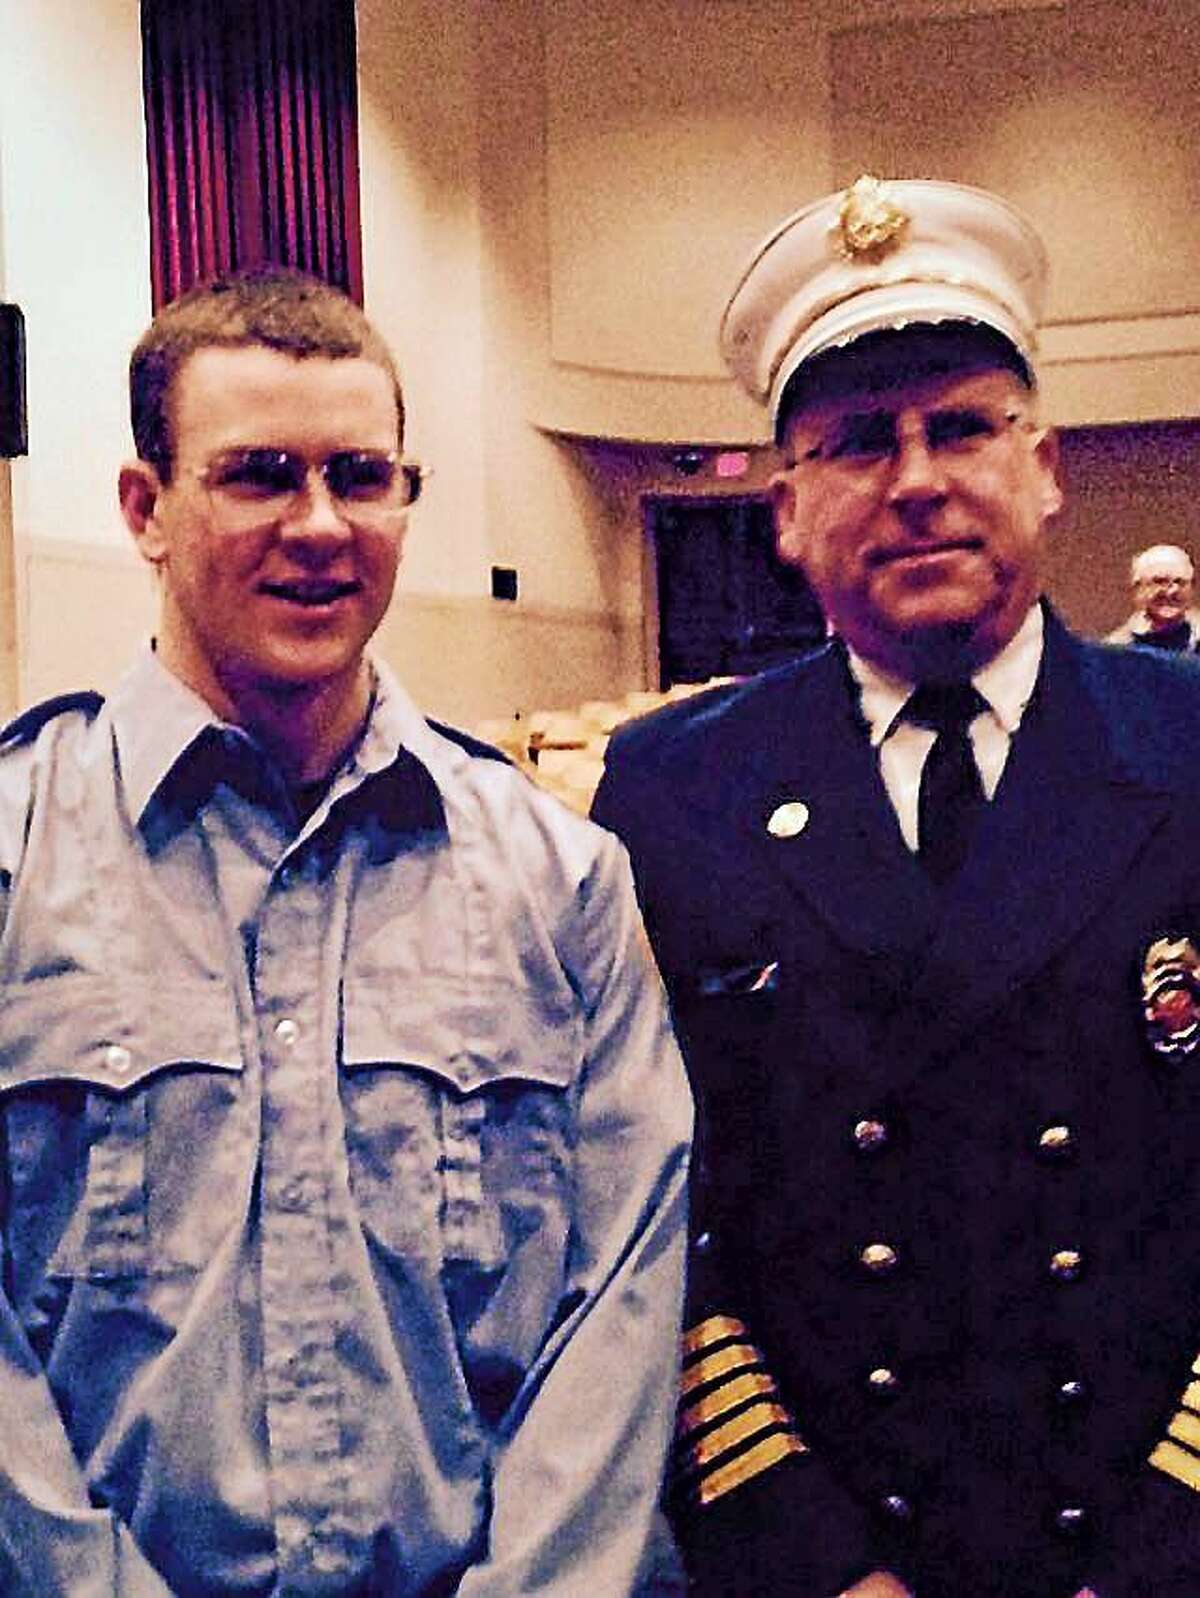 Killingworth Volunteer Fire Co. firefighter Kevin Gorman graduated from the Connecticut Fire Academy earlier this month.